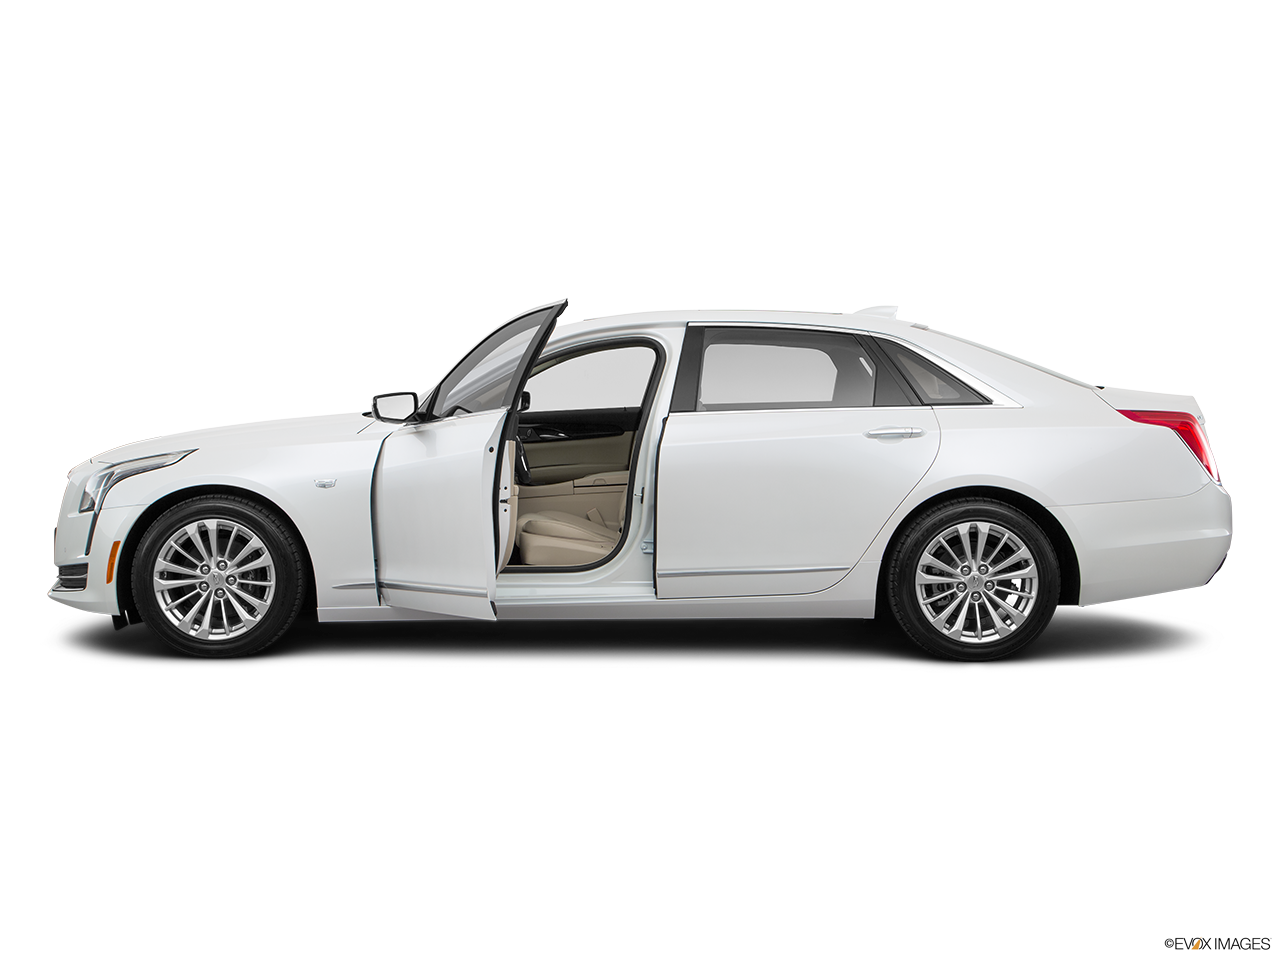 Side view of the Cadillac CT6